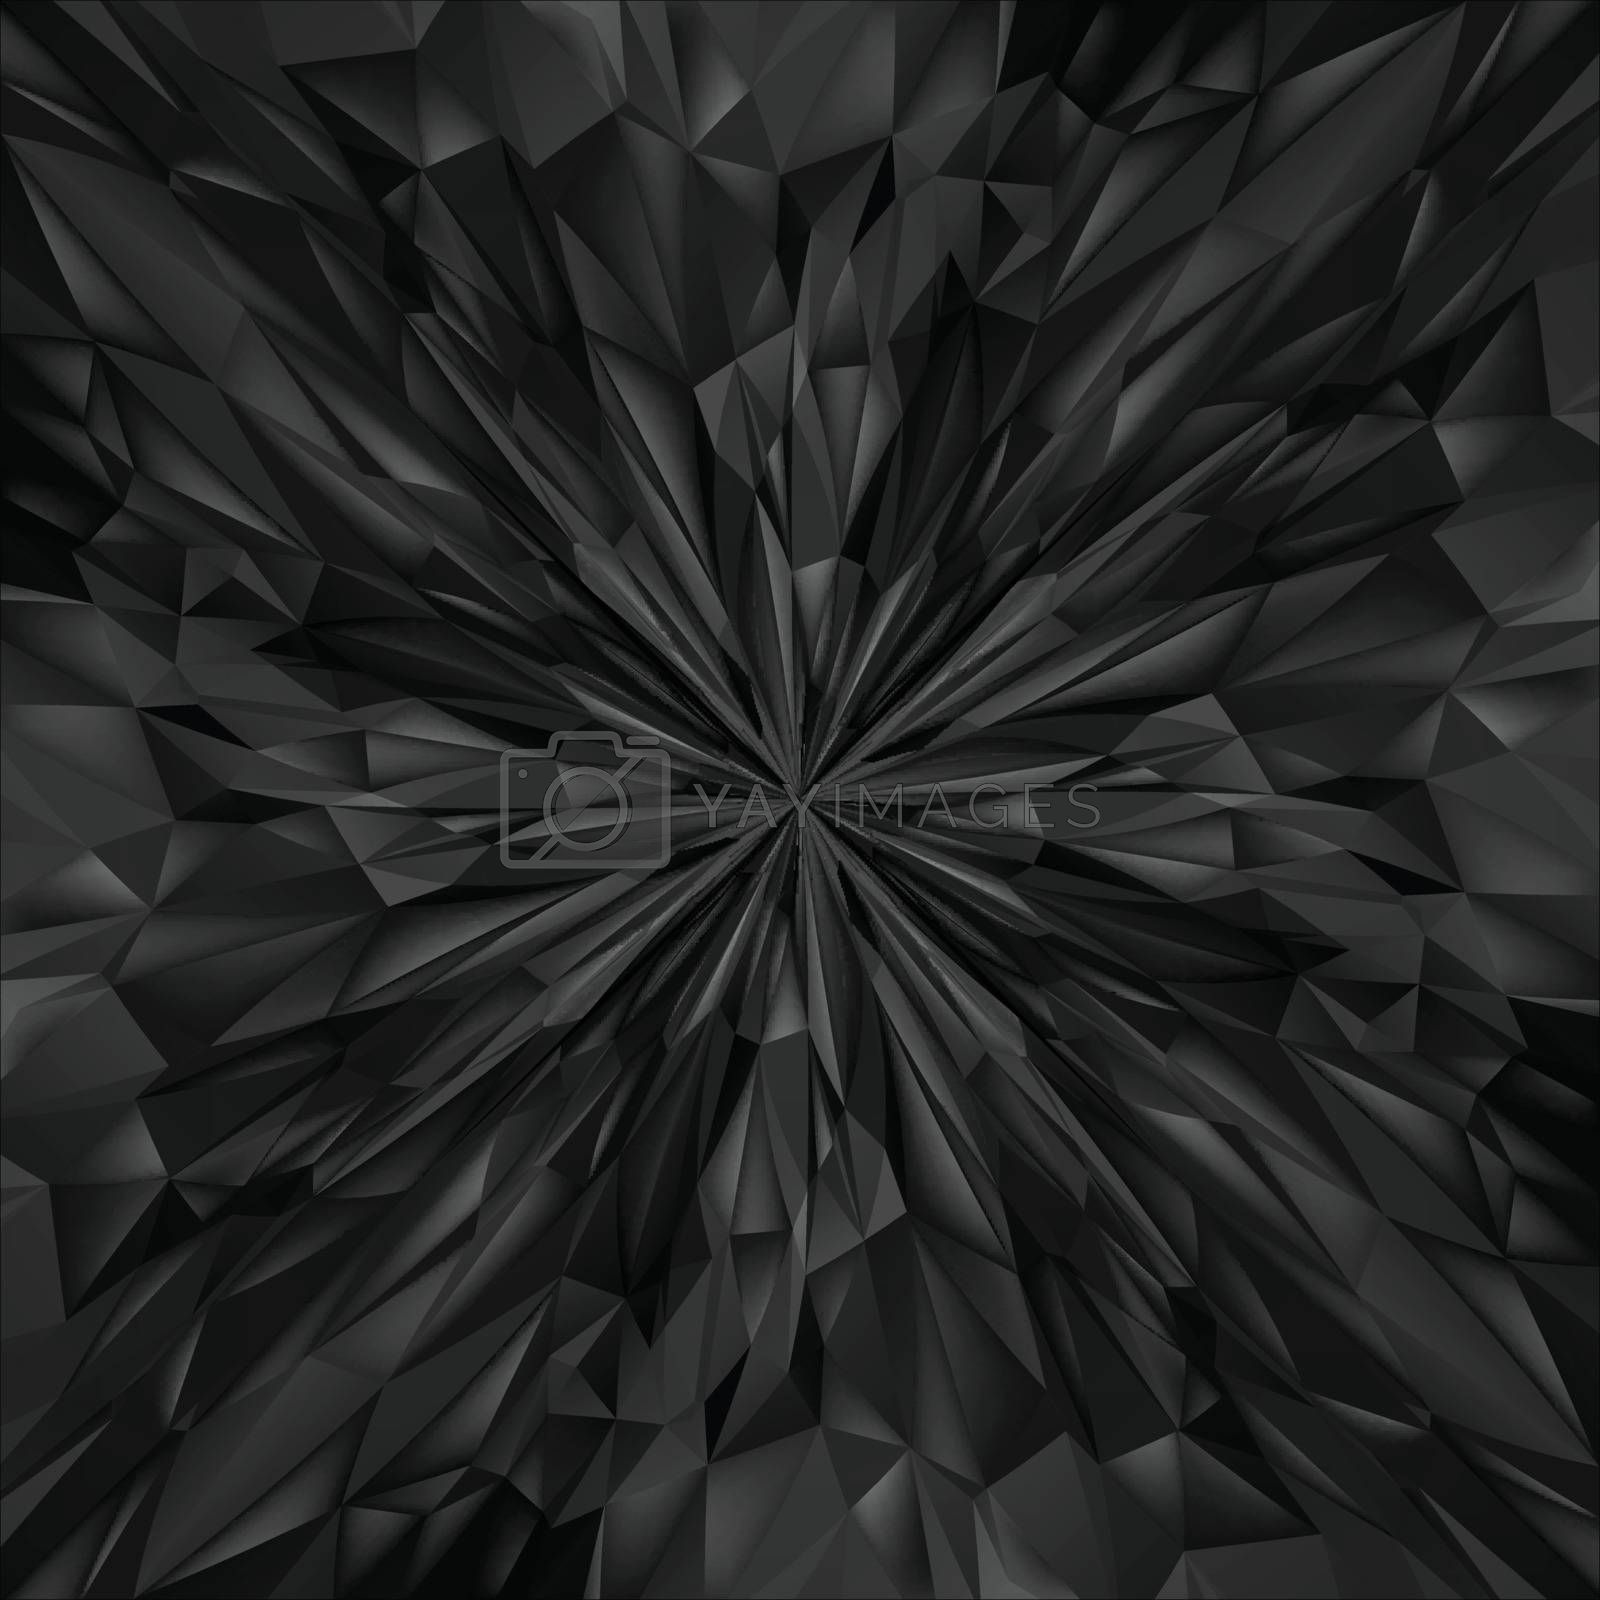 Abstract Black Composition. Magic Explosion Star with Particles. Illustration for Design